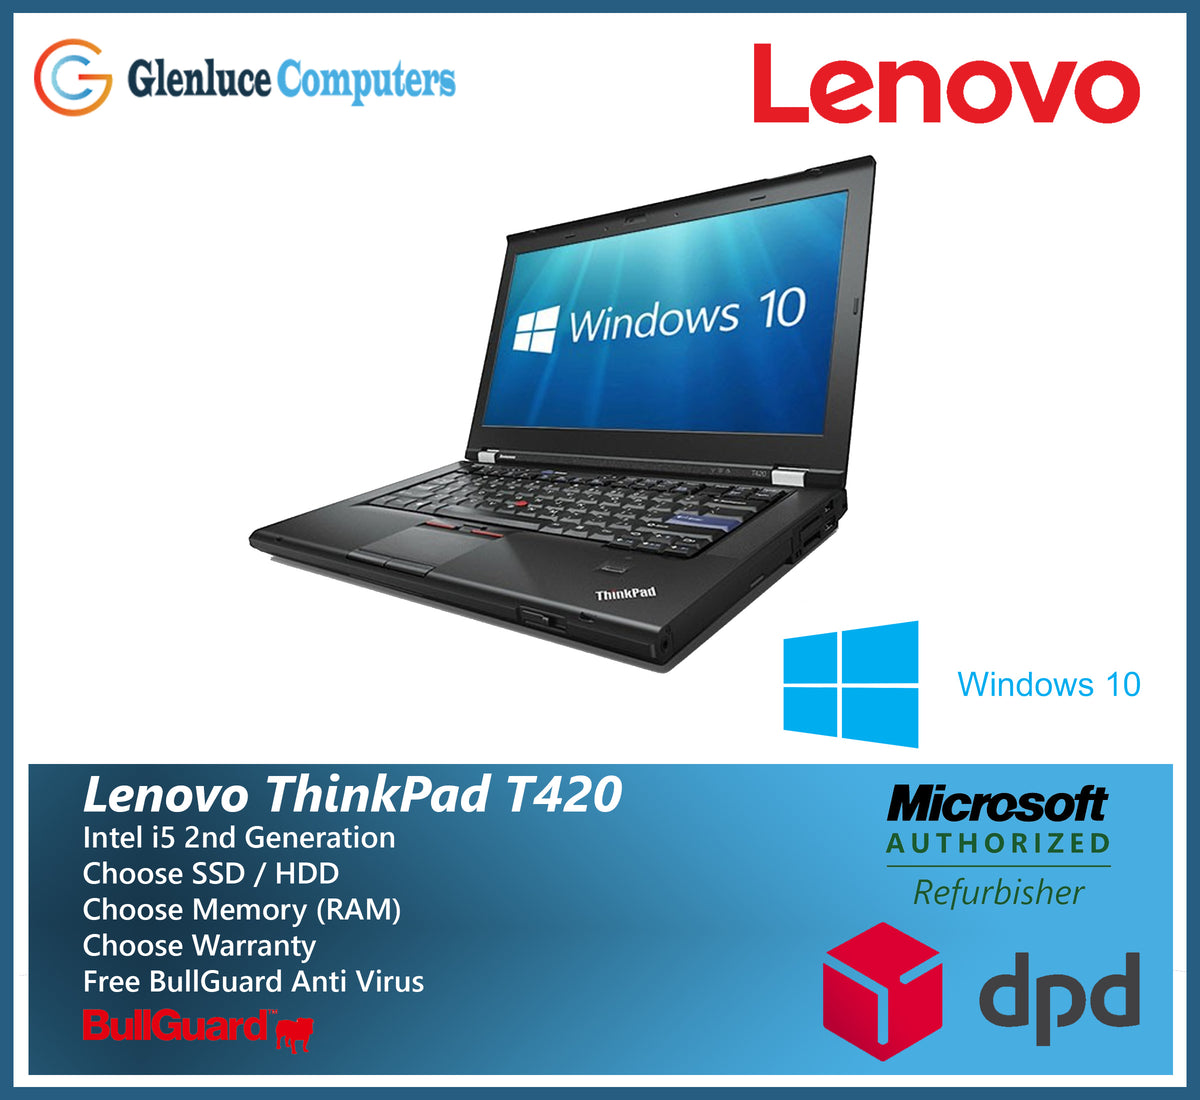 Lenovo ThinkPad Laptop T420 i5 Quad Core 4/8GB Ram 1TB or 480GBSSD HDD  Windows 10